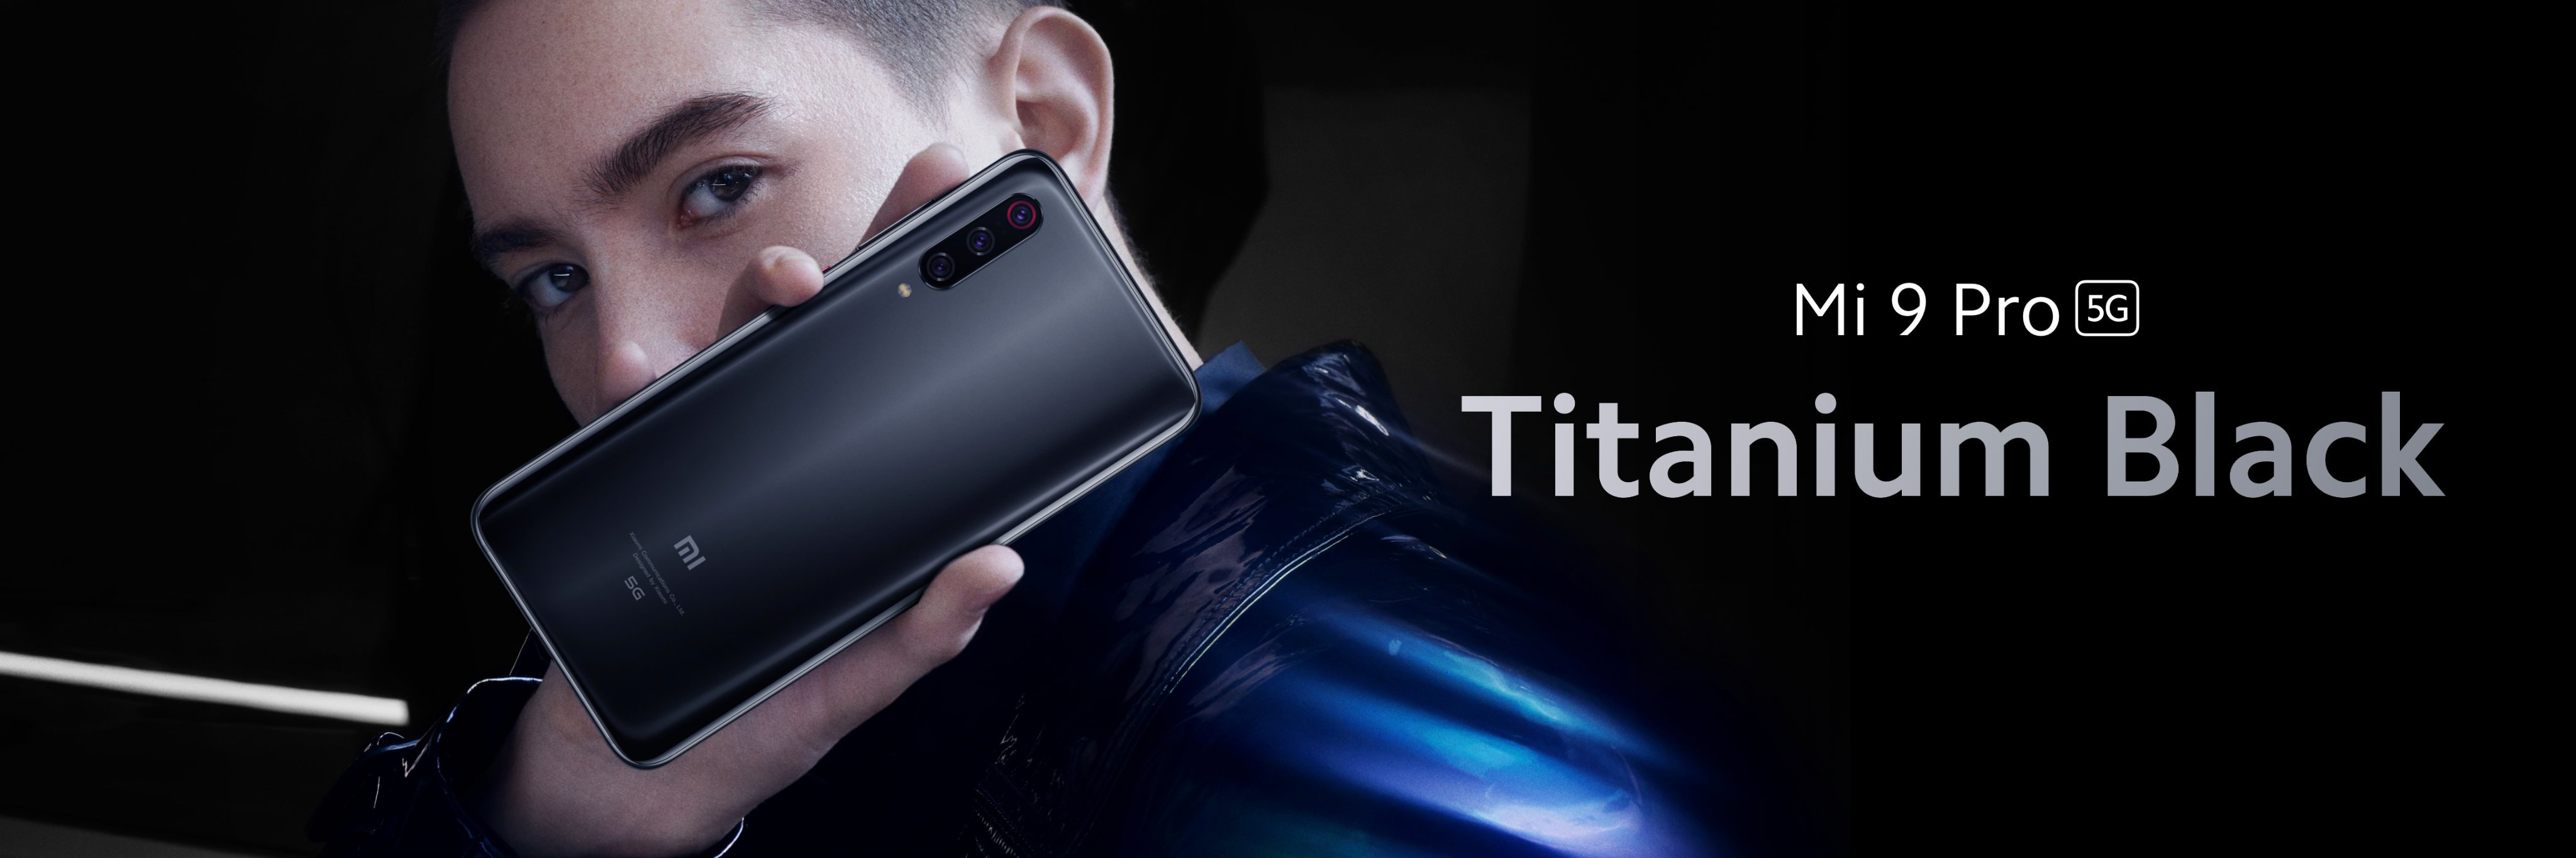 New Xiaomi Mi 9 Pro 5G, features and price.  Xiaomi Addicted News